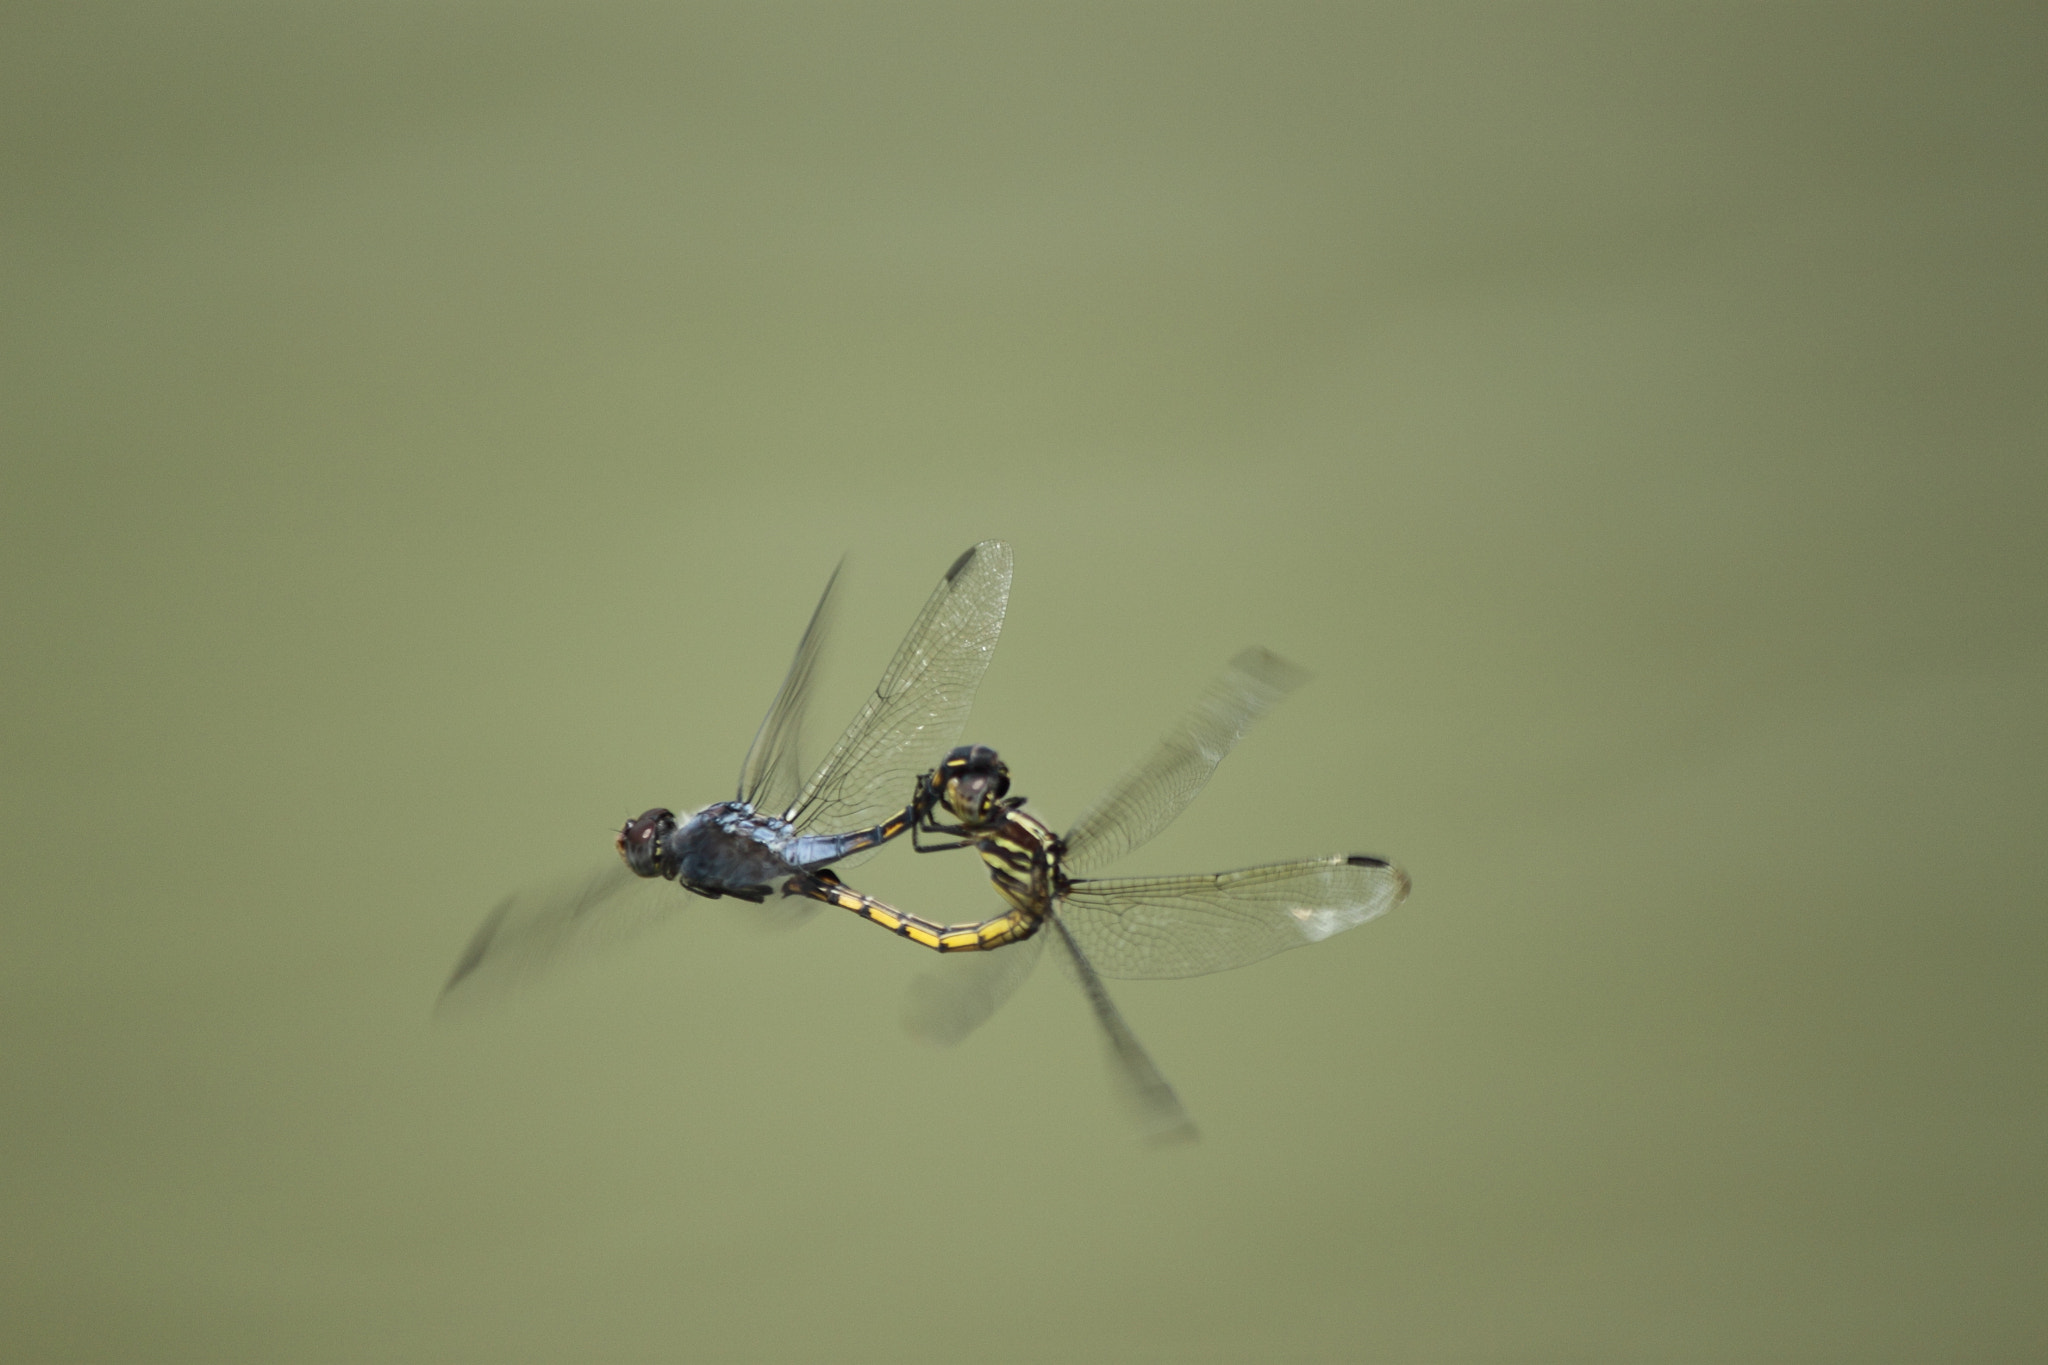 Photograph Dragon Flies by udhay krishnamurthy on 500px